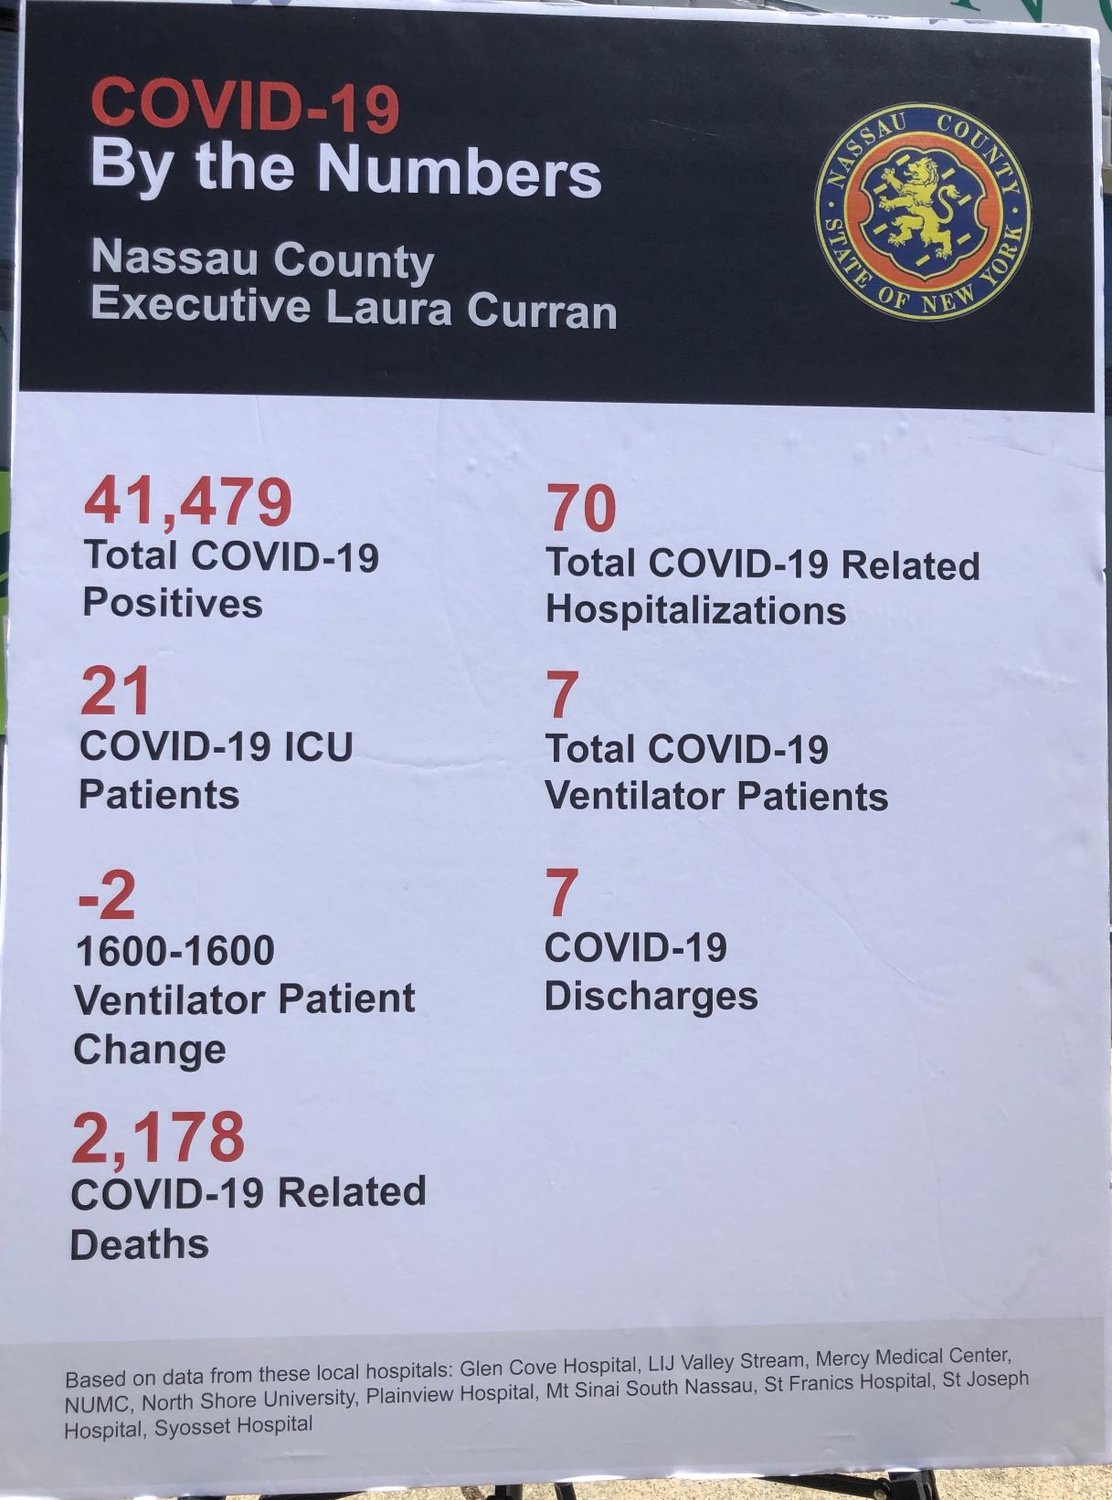 The Covid-19 numbers for Nassau County as of June 22.